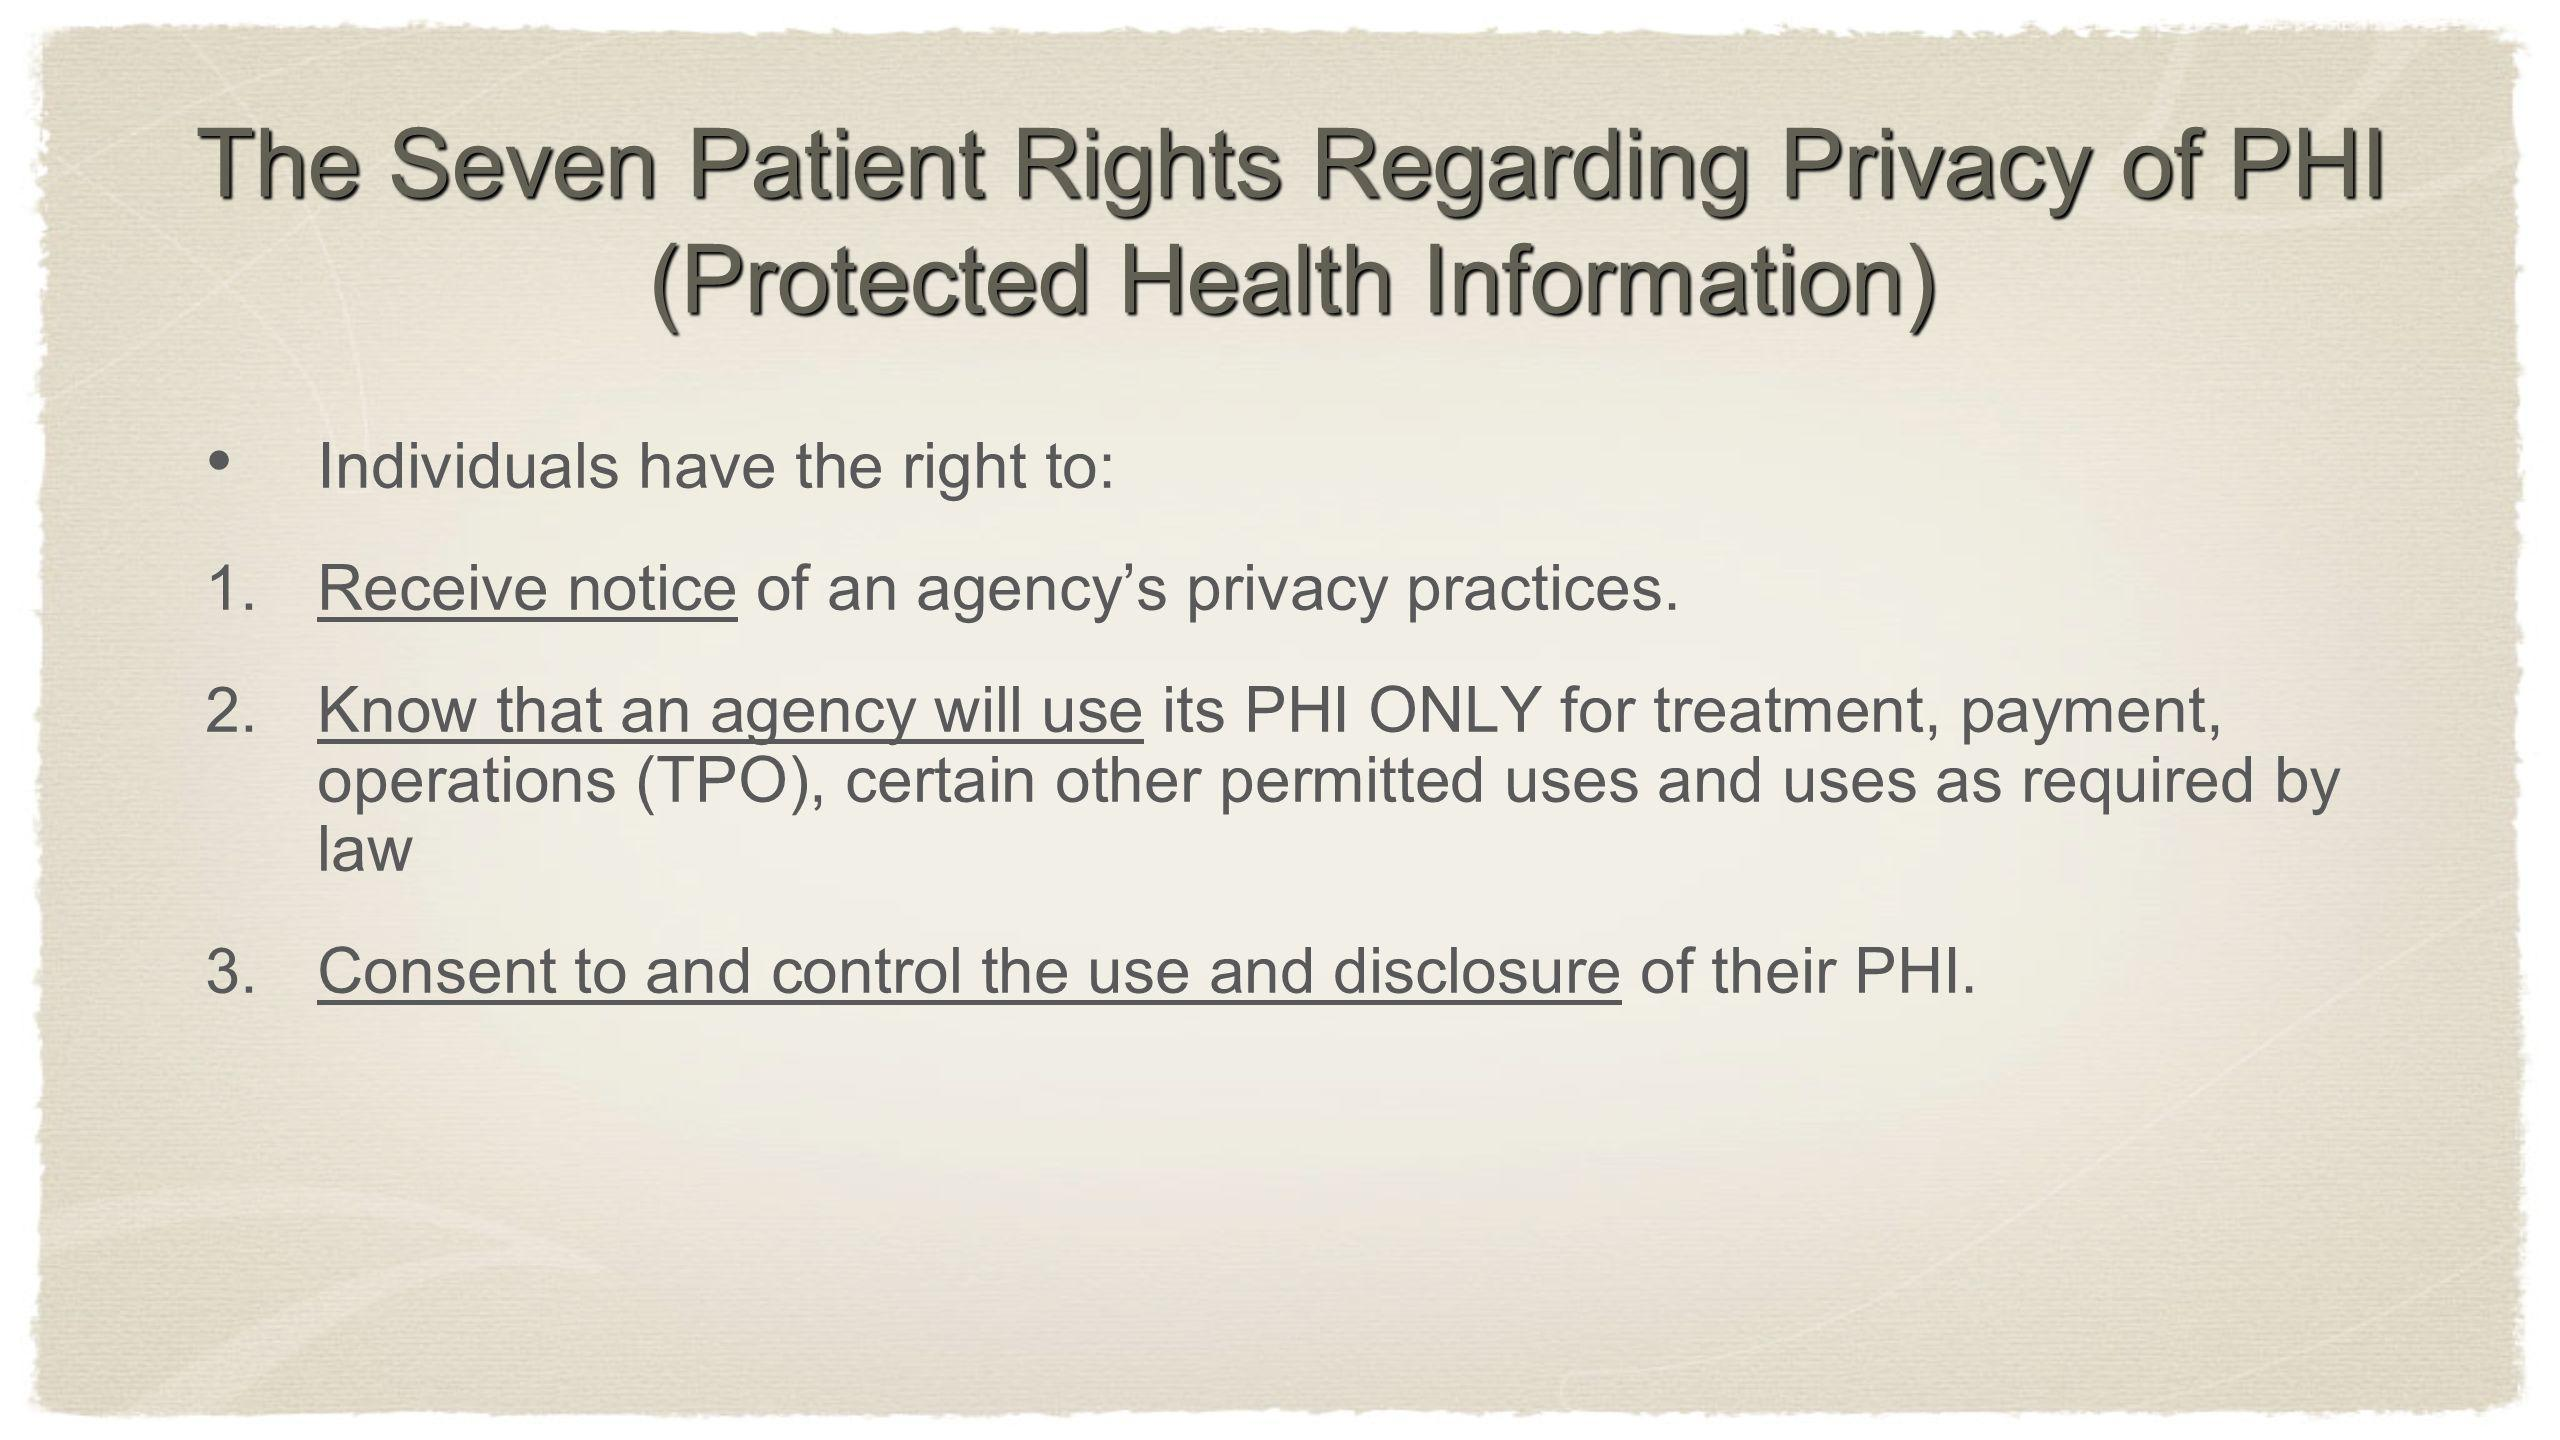 The Seven Patient Rights Regarding Privacy of PHI (Protected Health Information)